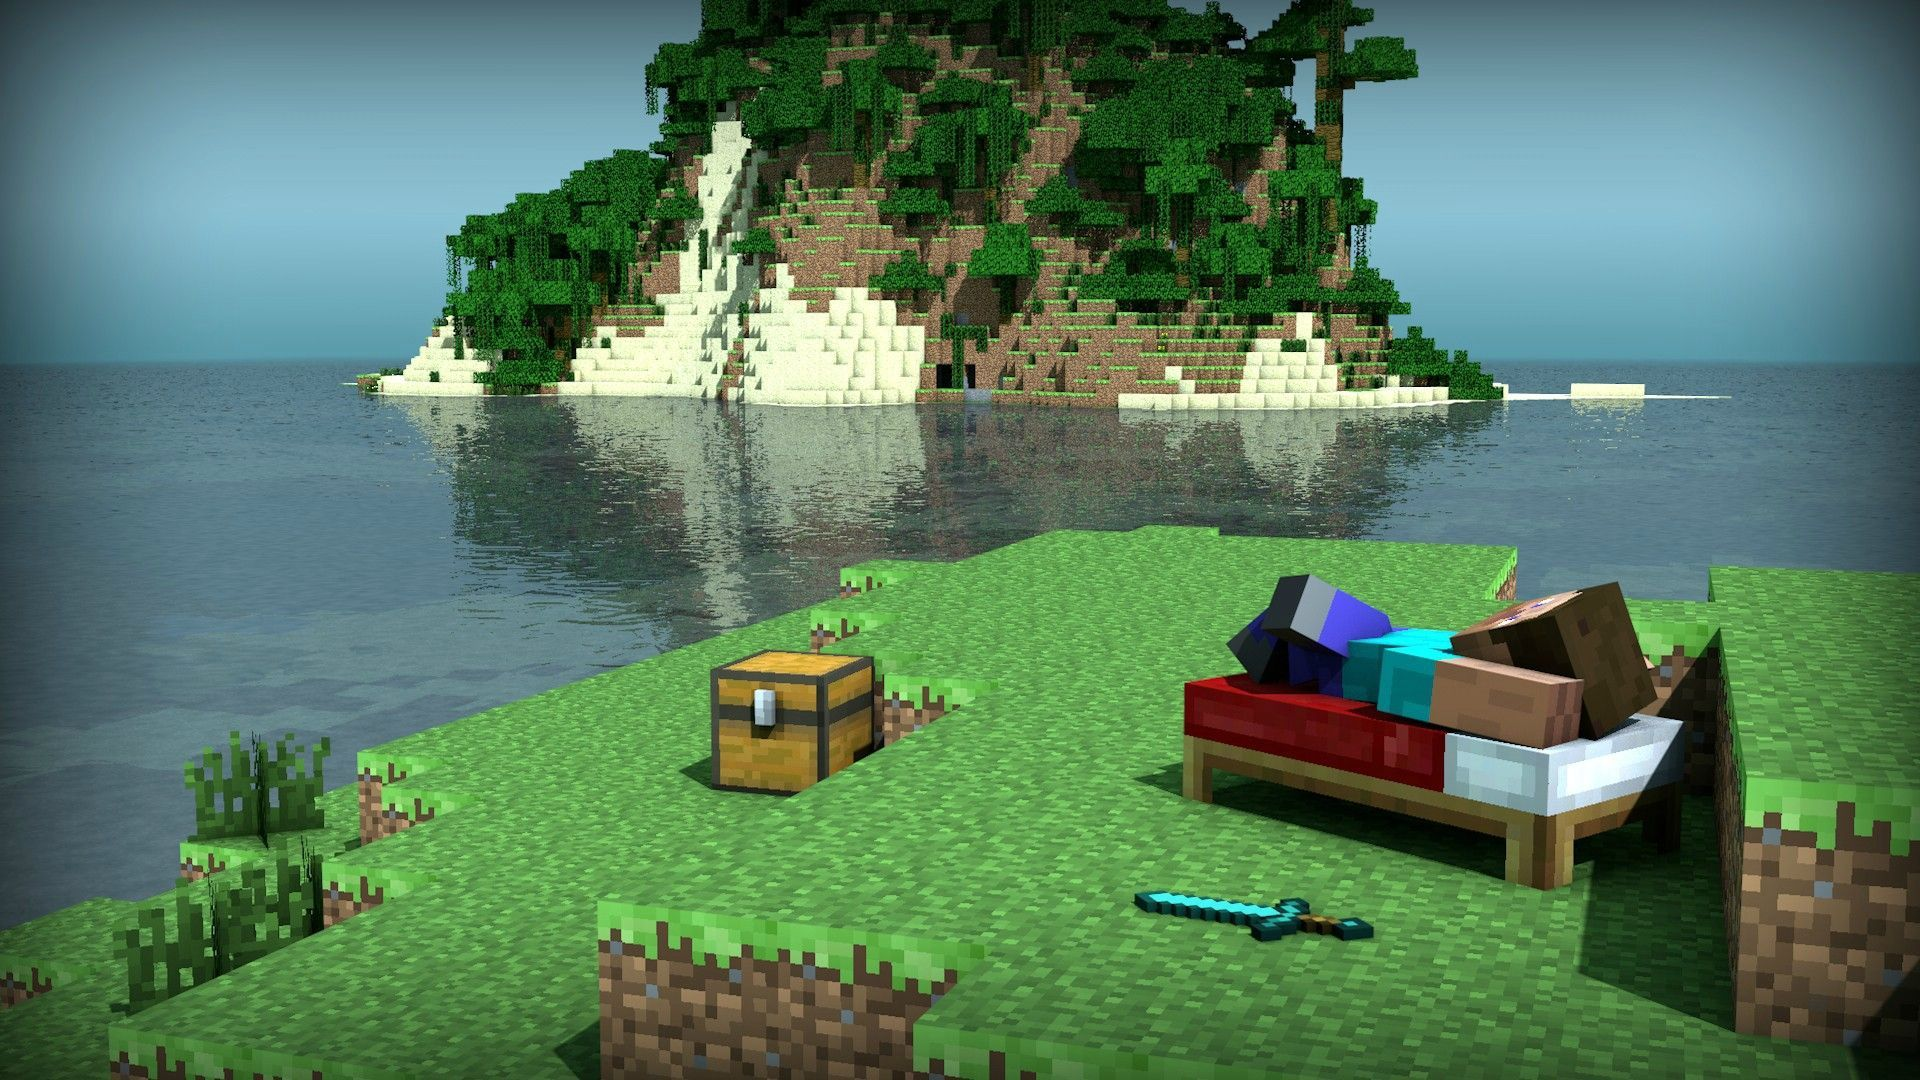 4k Minecraft Wallpaper Minecraft Wallpaper Minecraft Songs Background Images Wallpapers